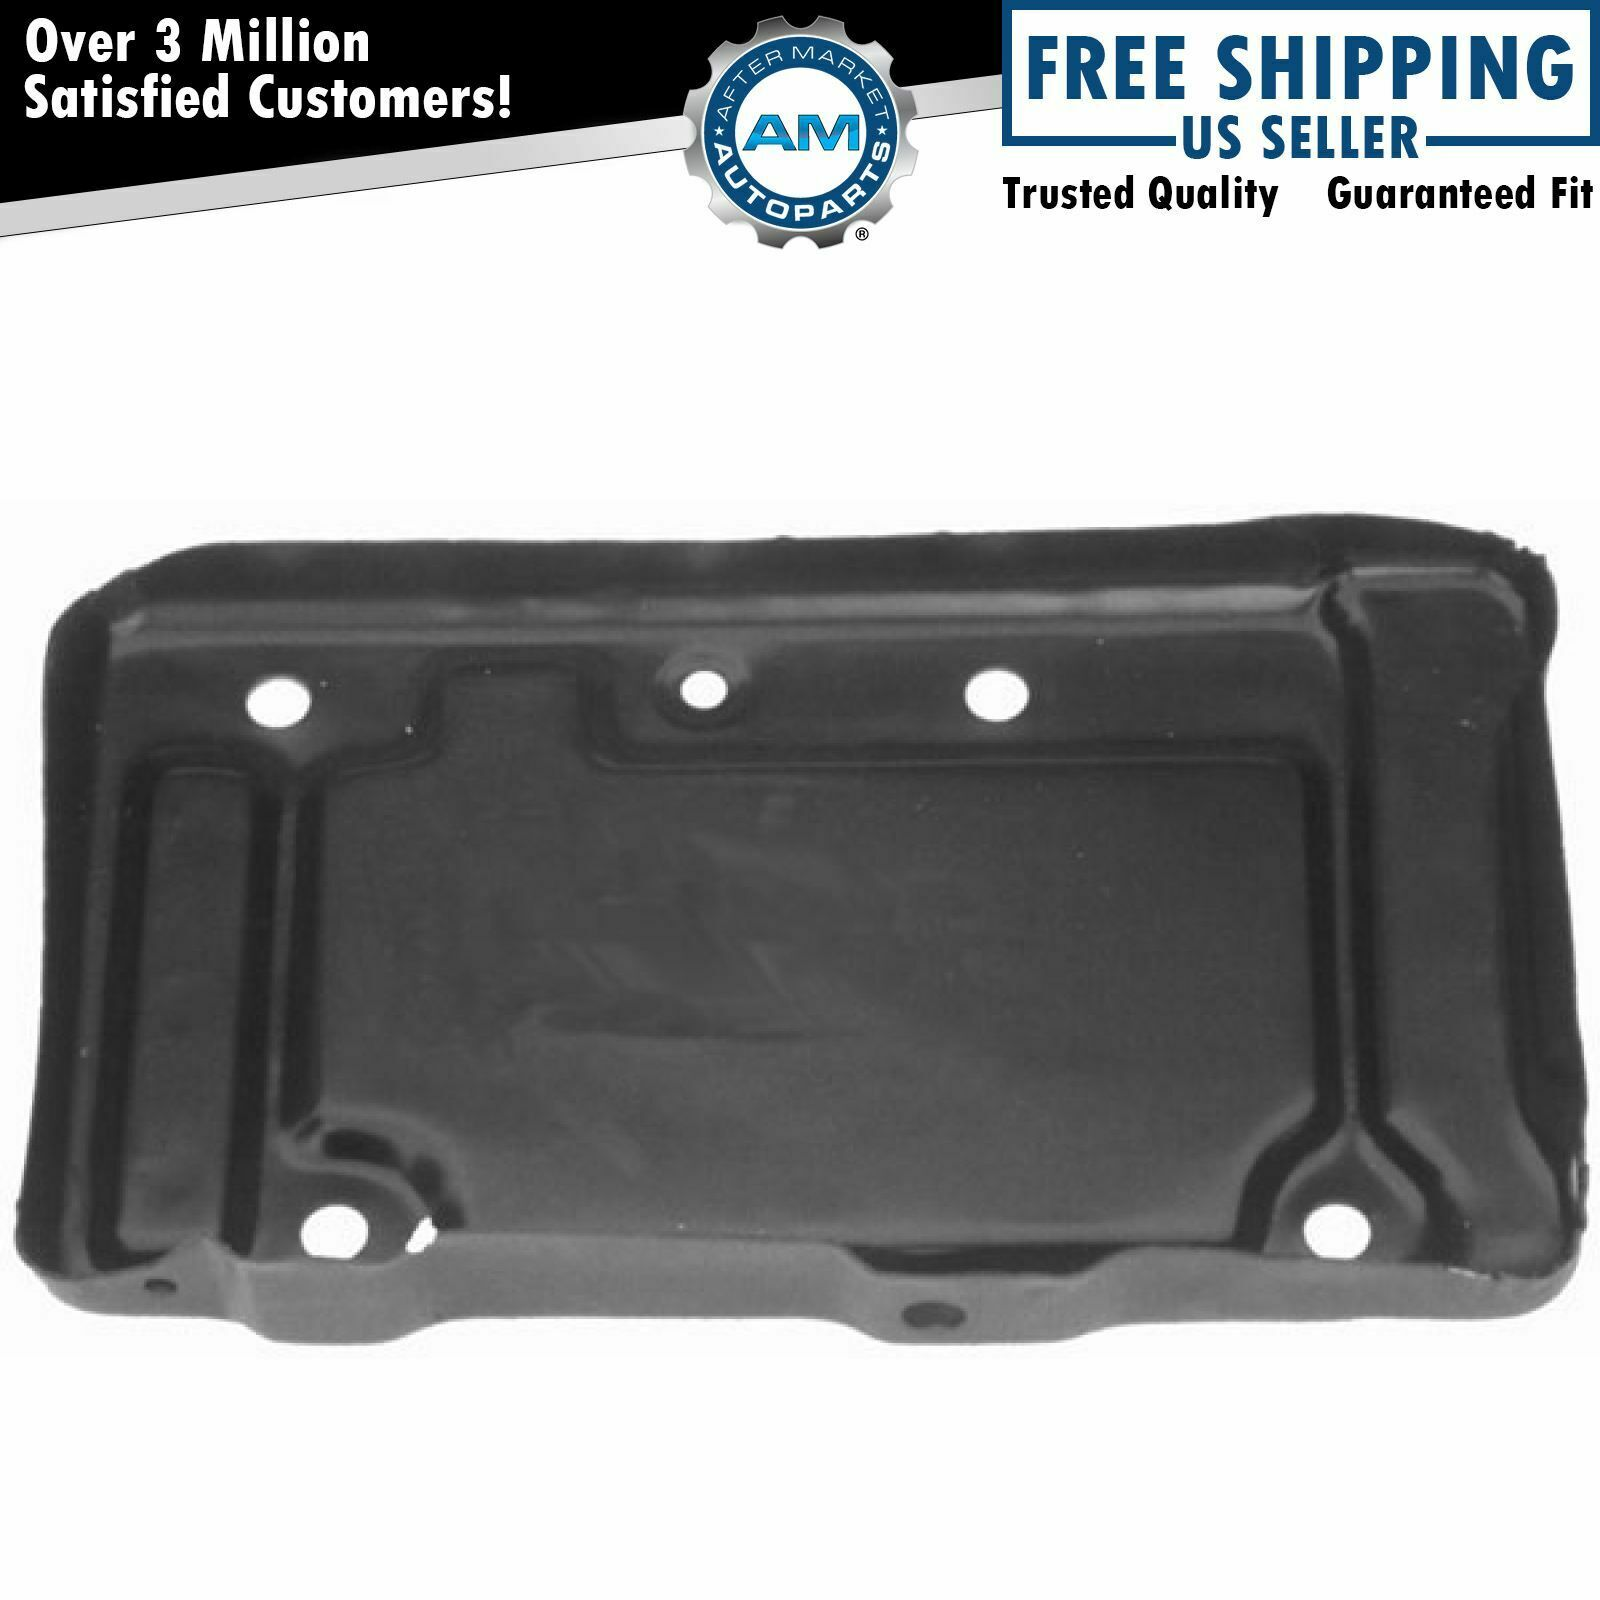 BATTERY TRAY FOR Charger Coronet Belvedere Roadrunner - $26.87 ...